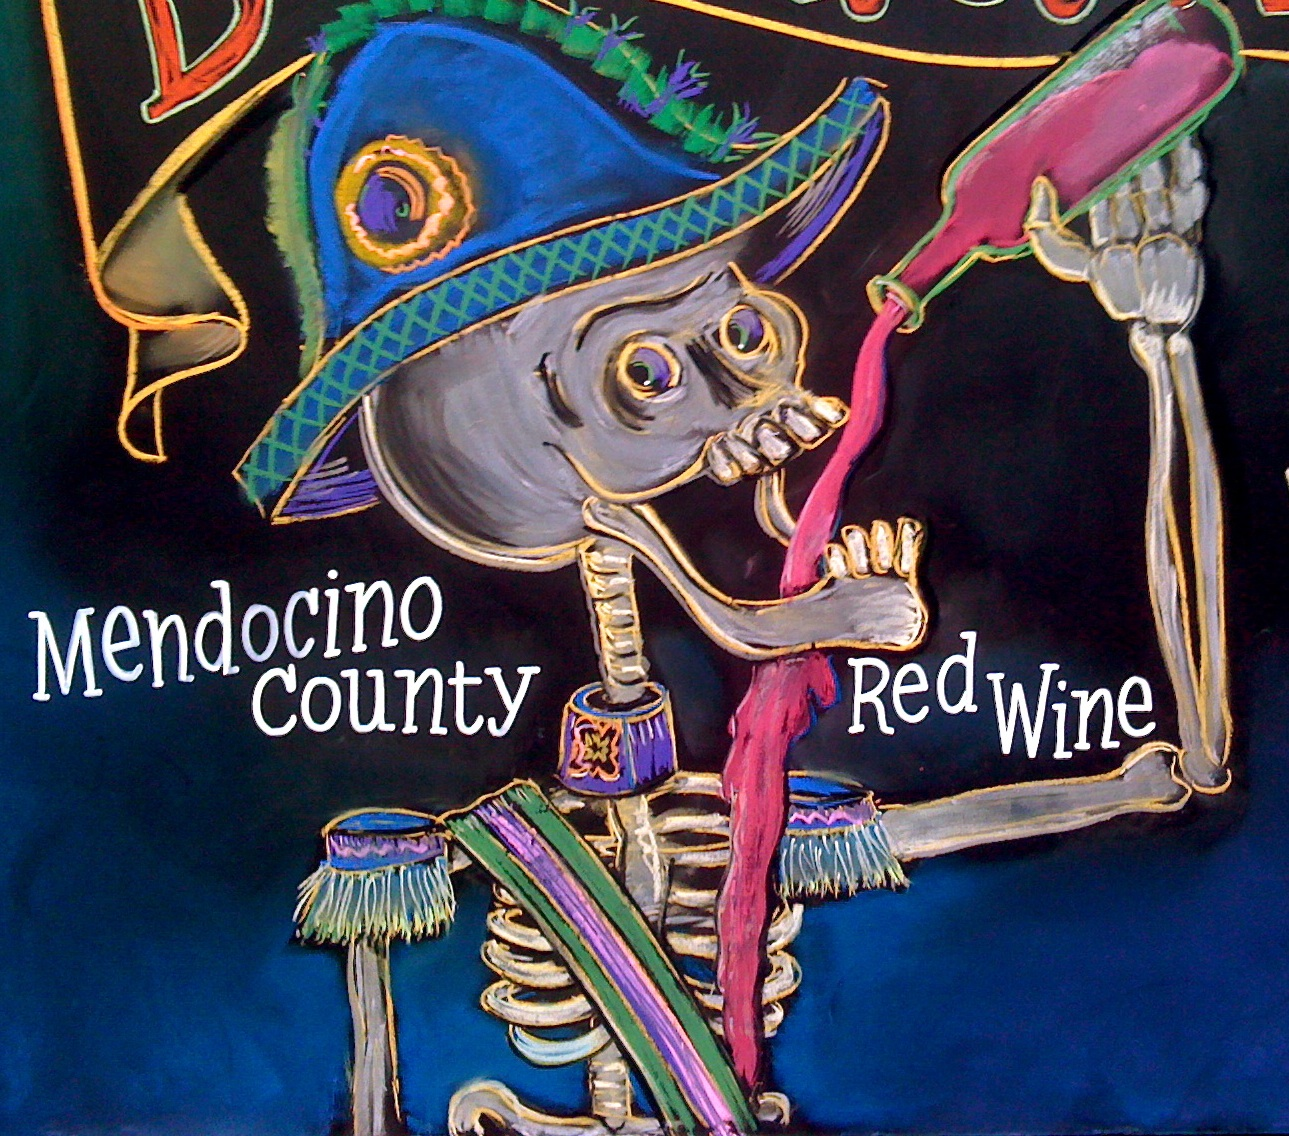 Mendocino County Red Wine by Billy